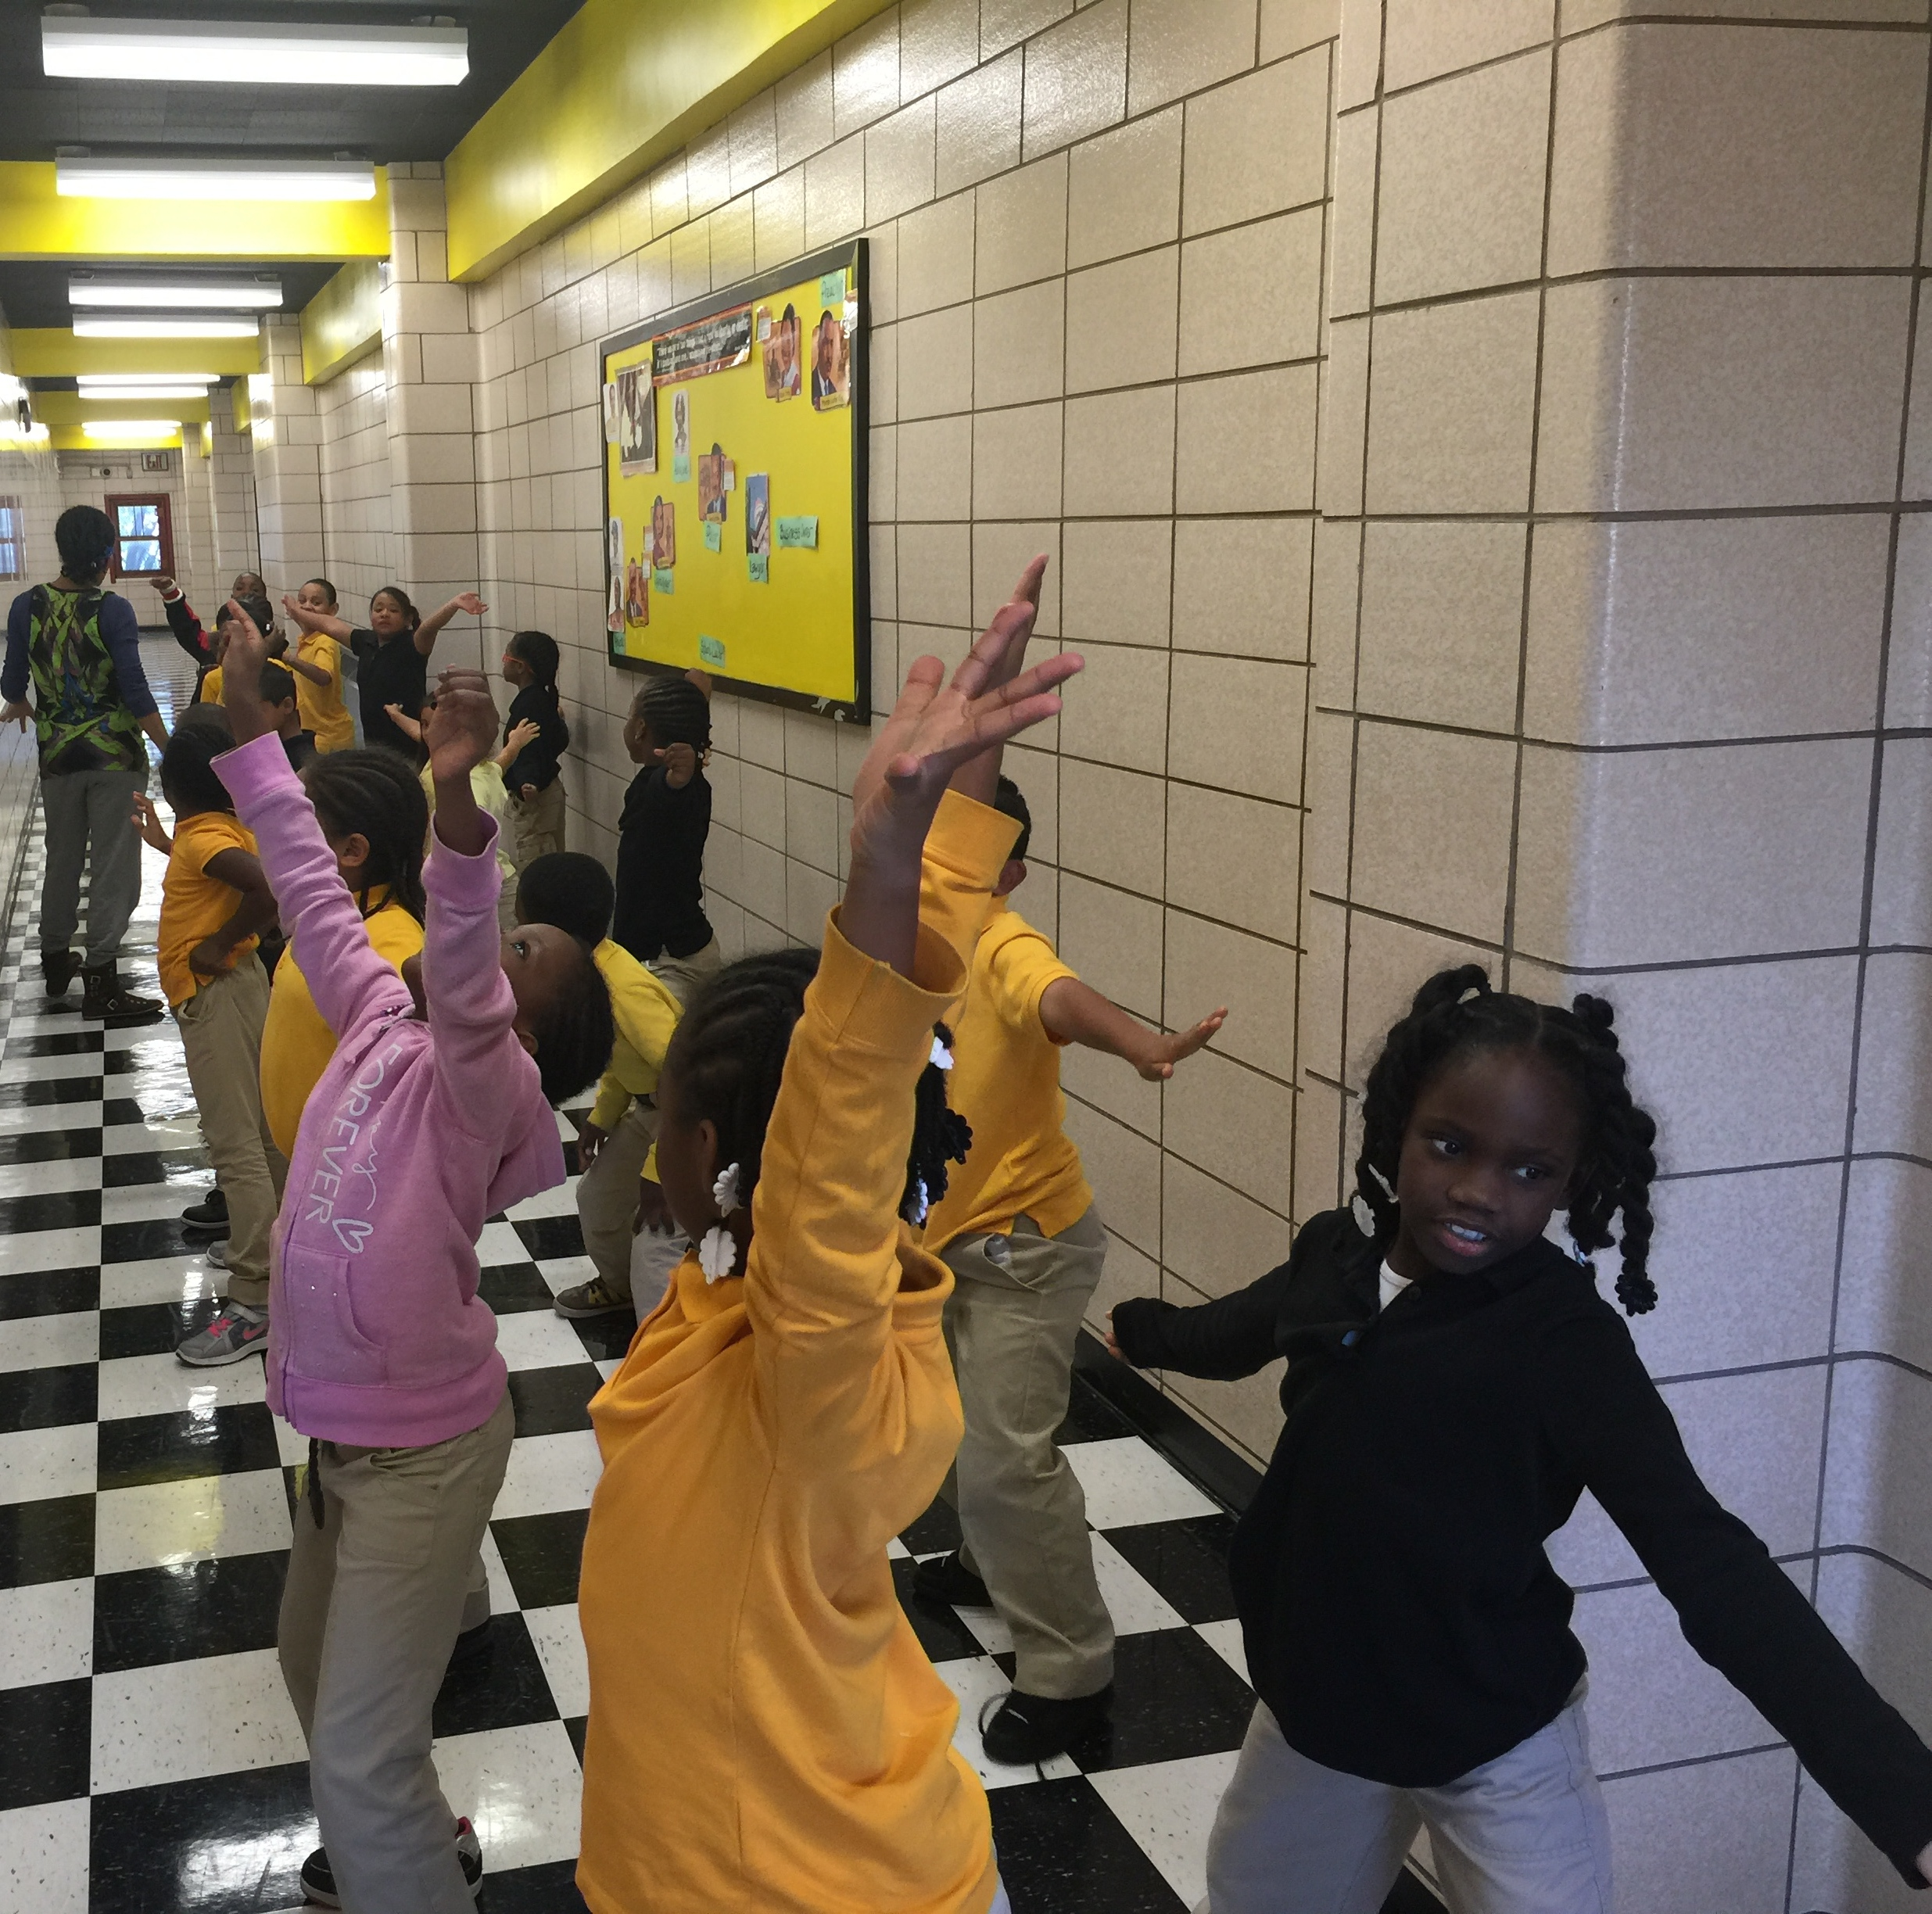 Teaching Firms of America - Students explore movement and culture through folkloric dance